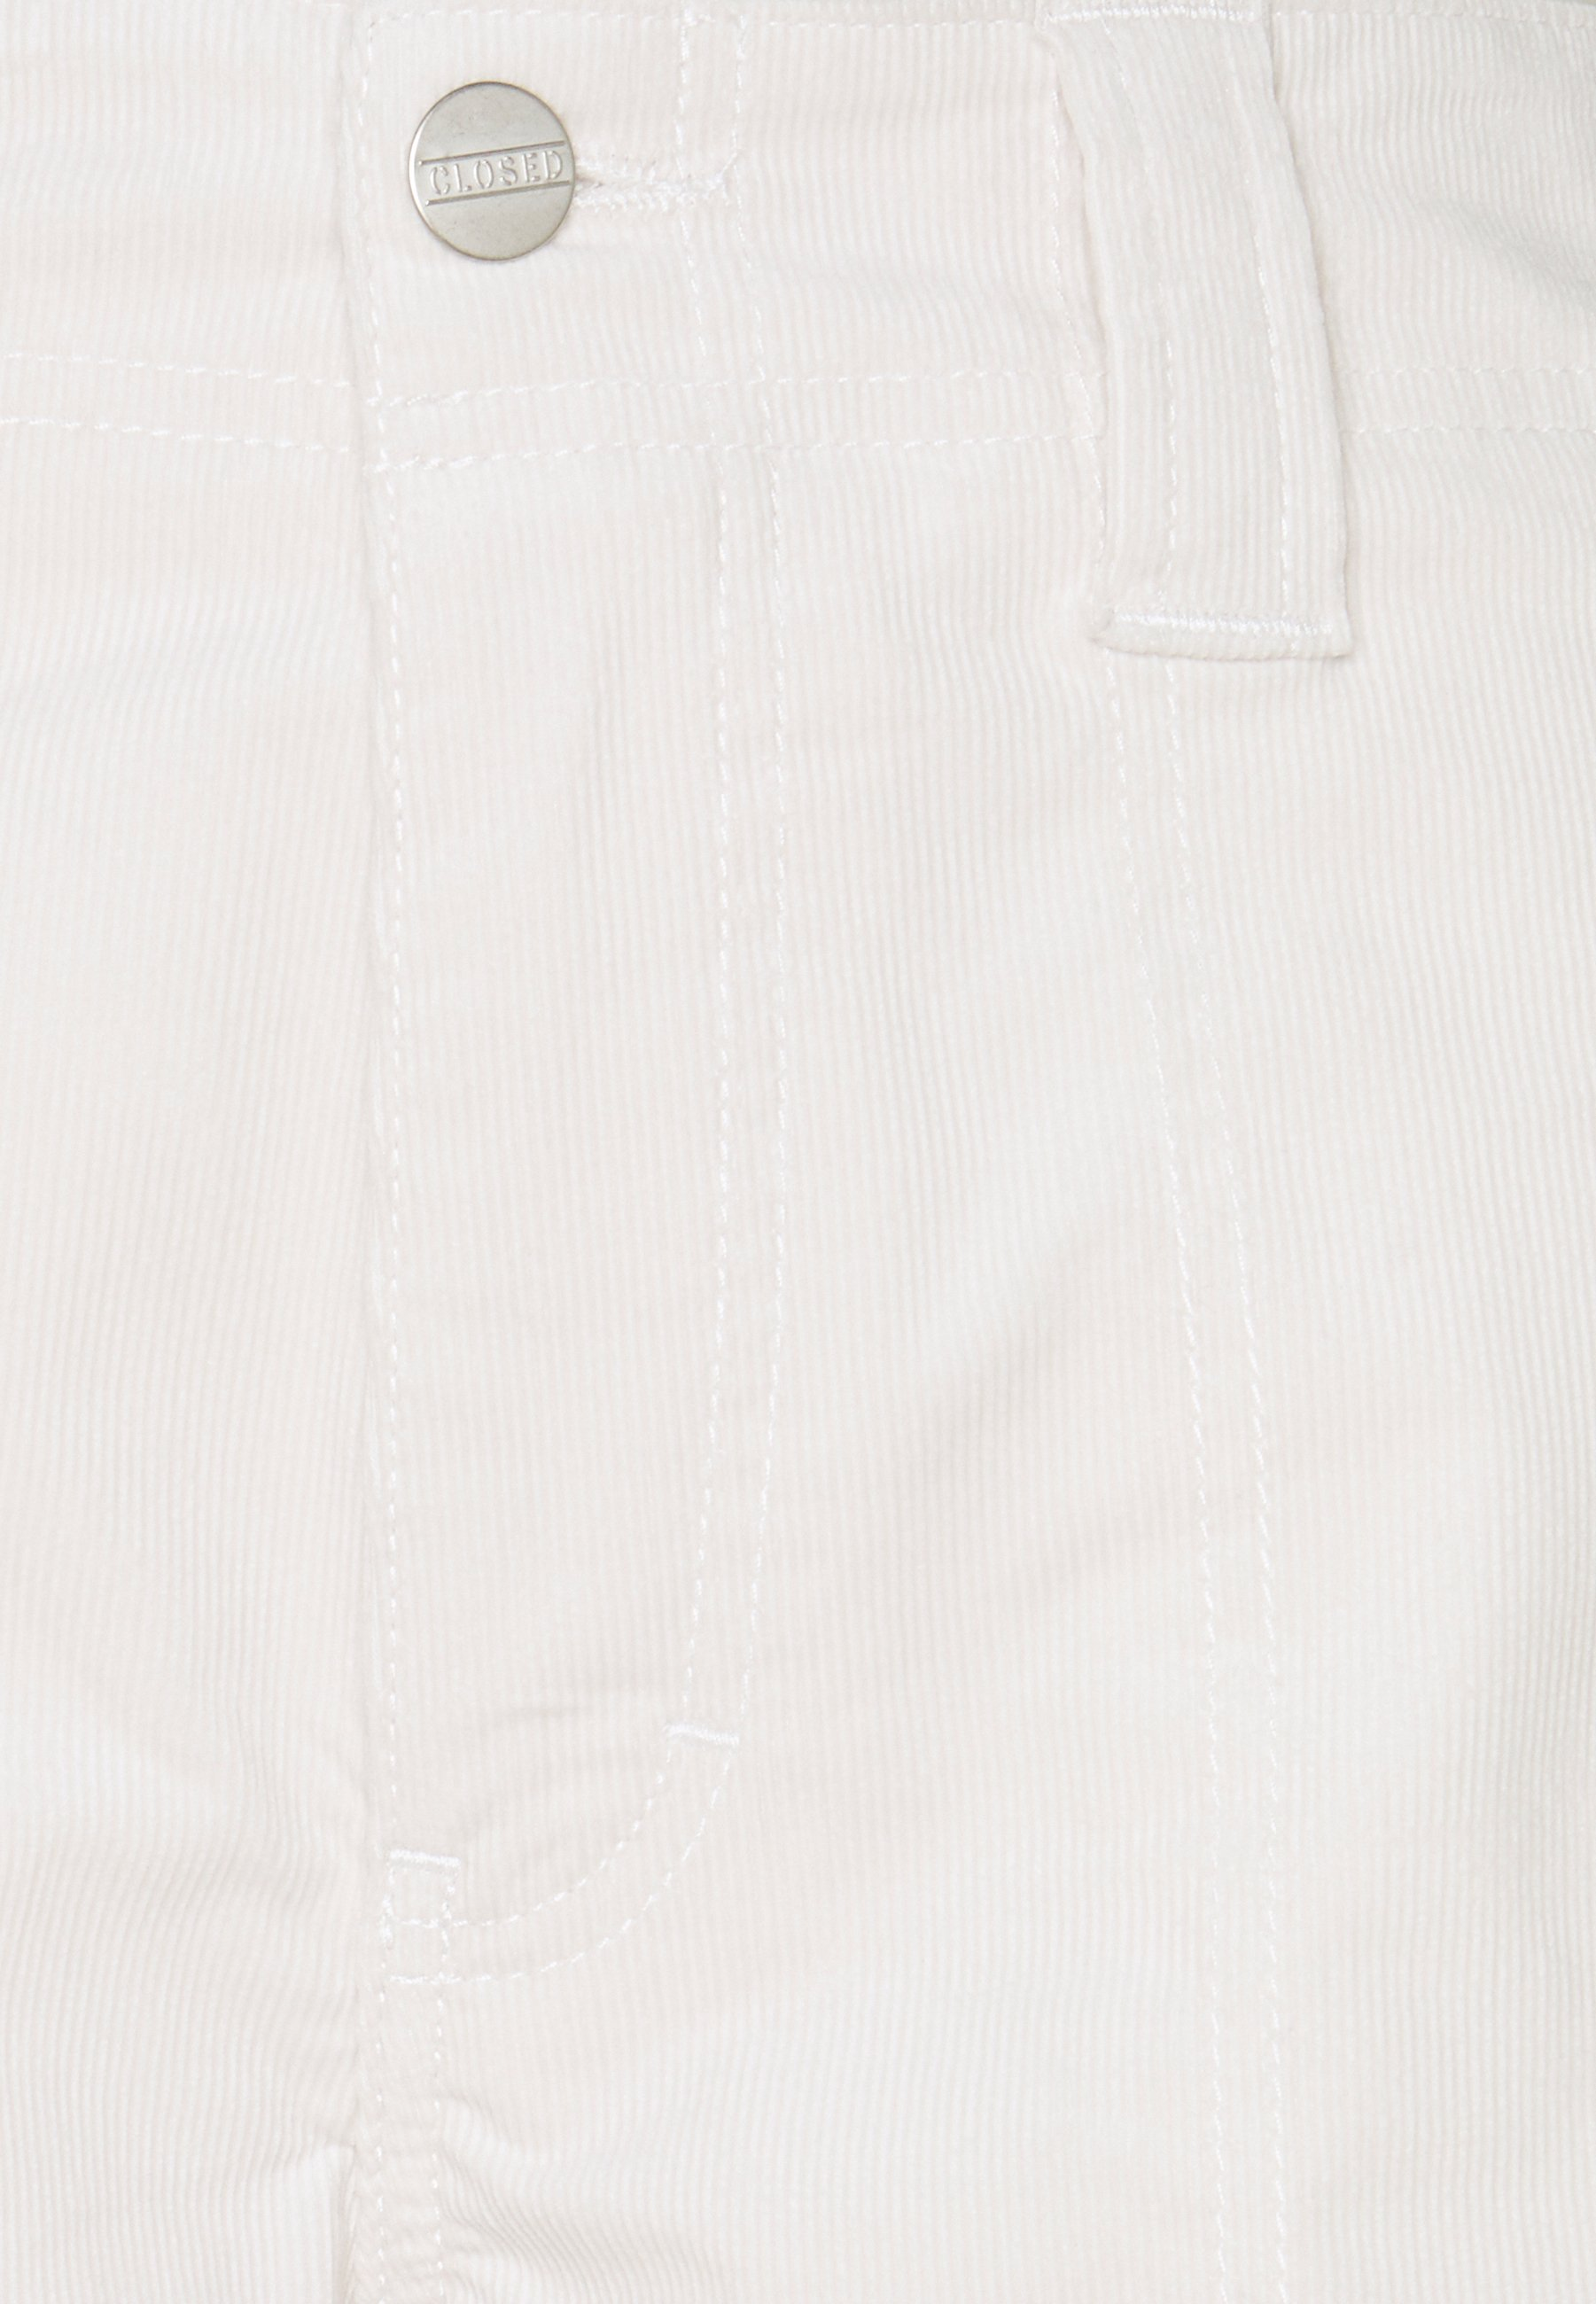 Low Cost Women's Clothing CLOSED JOSY Chinos linen white mBhMh1kwo